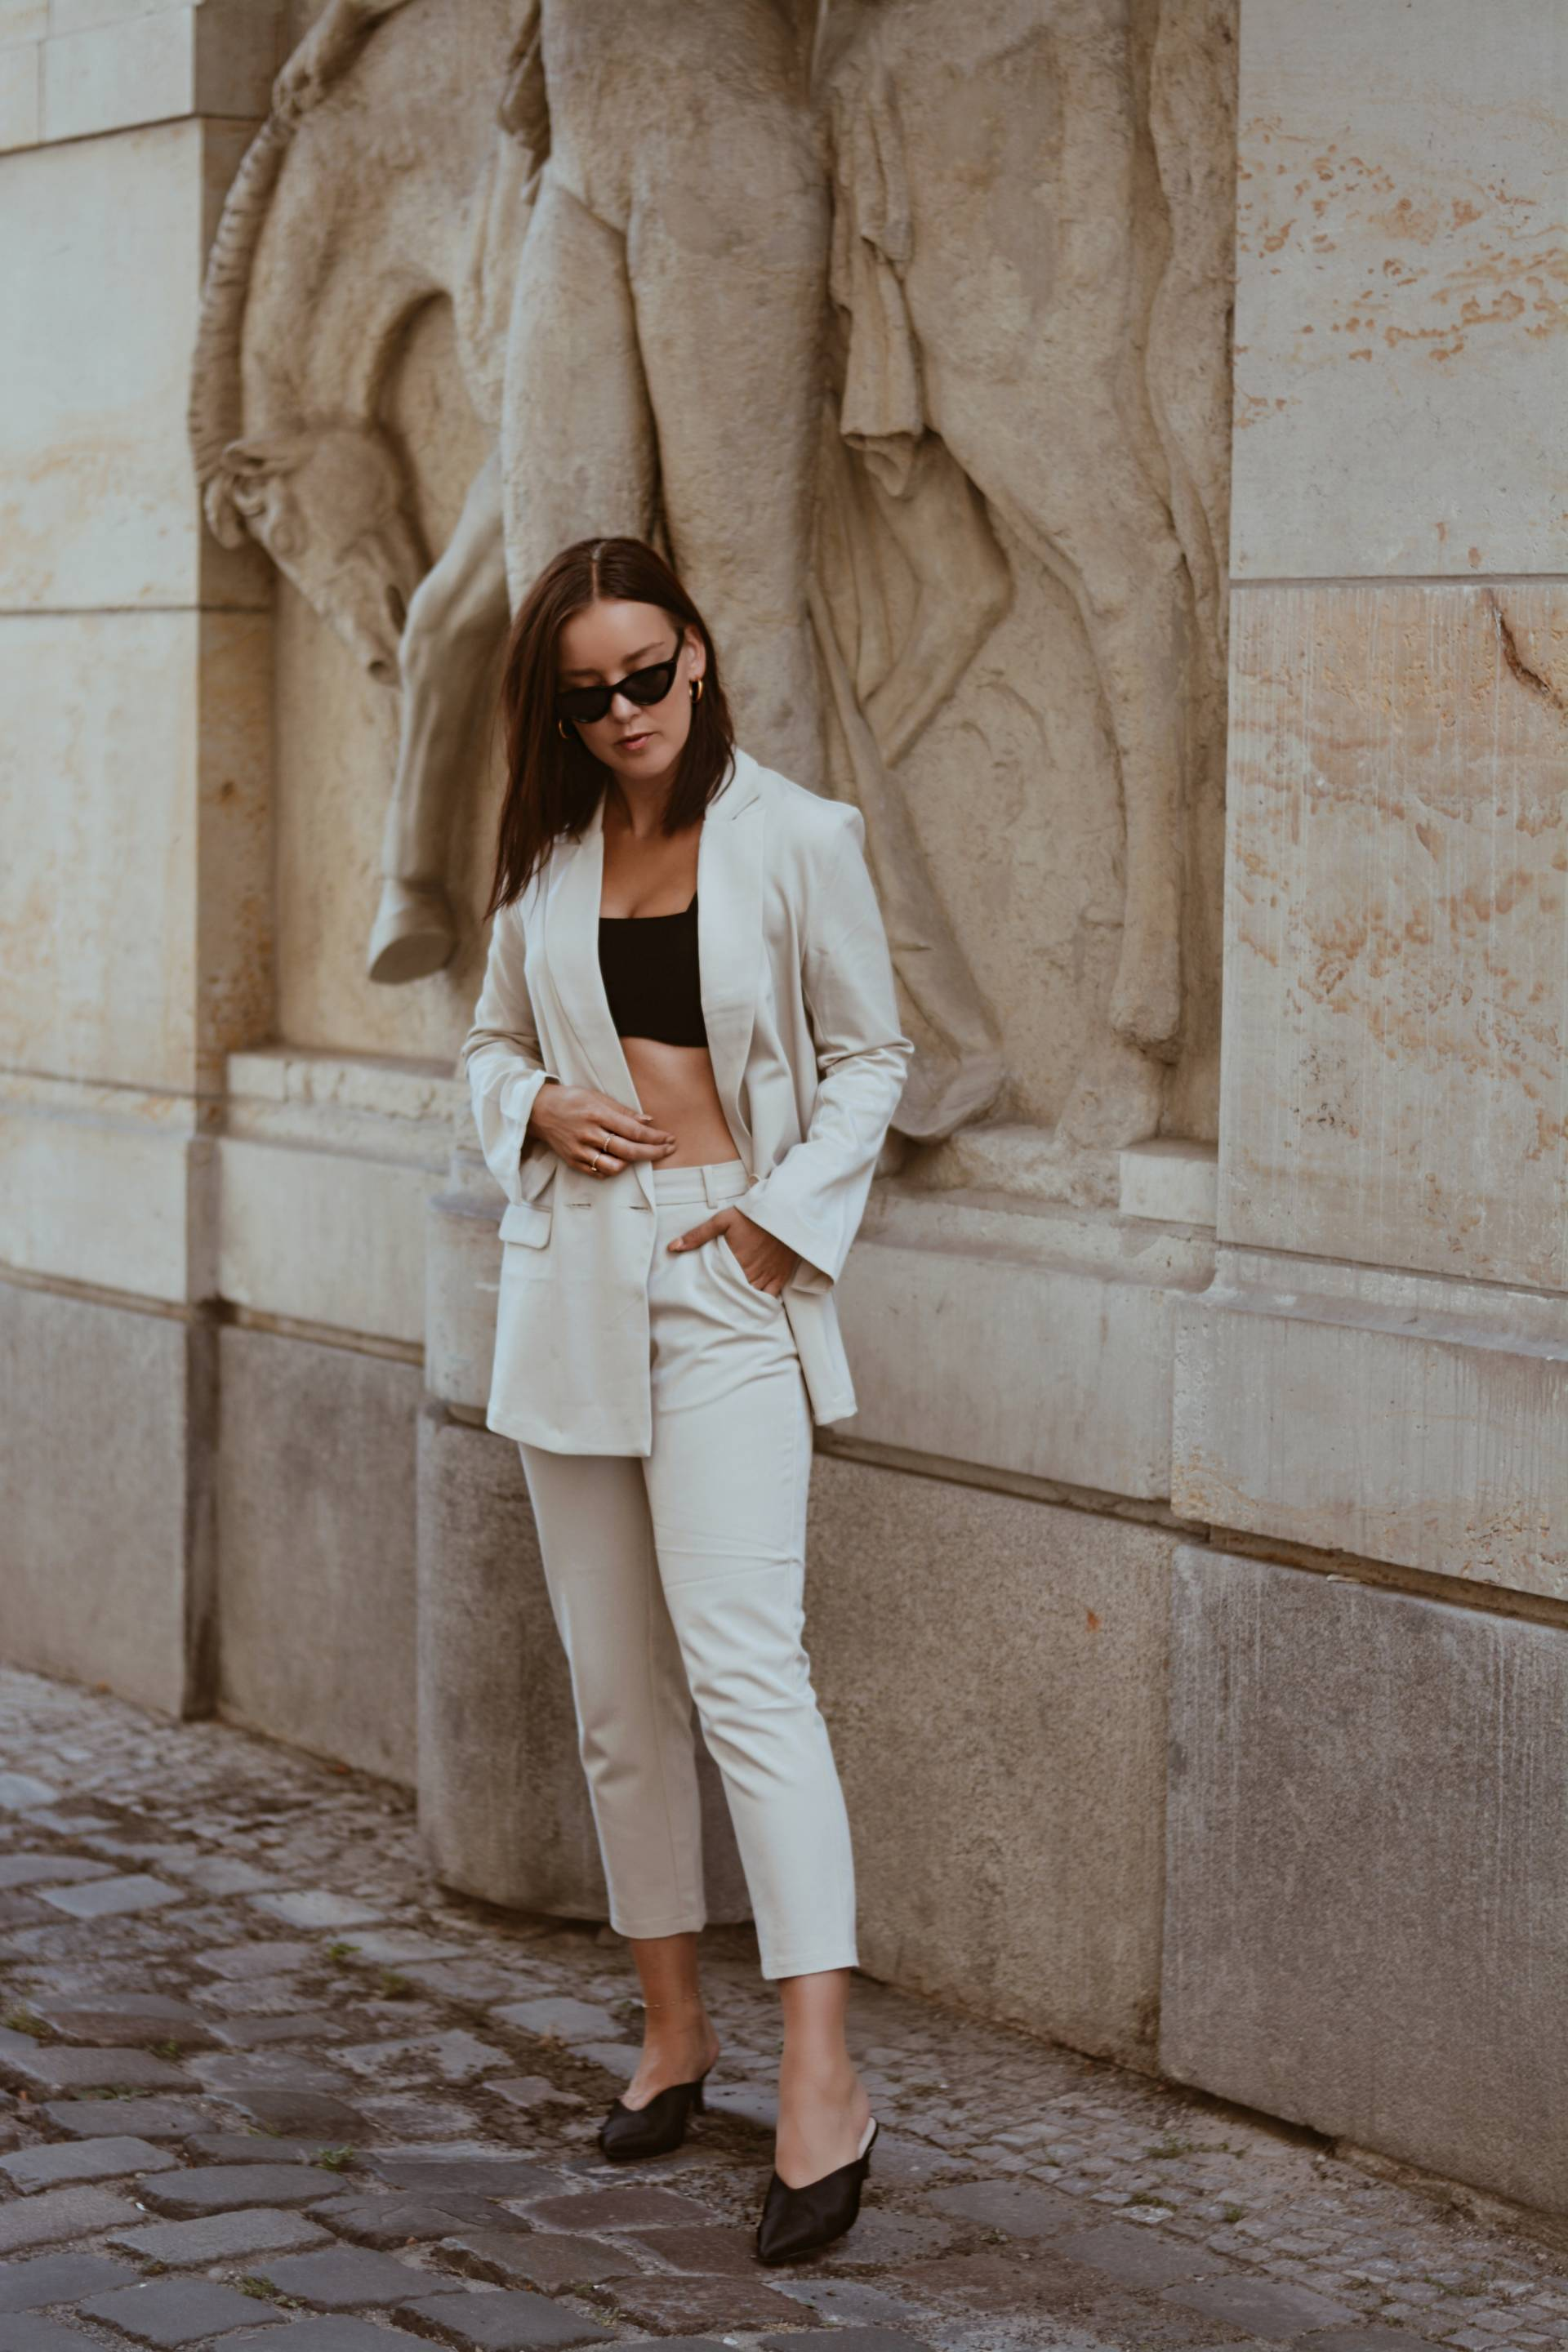 style-appetite-OBSESSED-WITH-nEUTRALS-and-SUITS